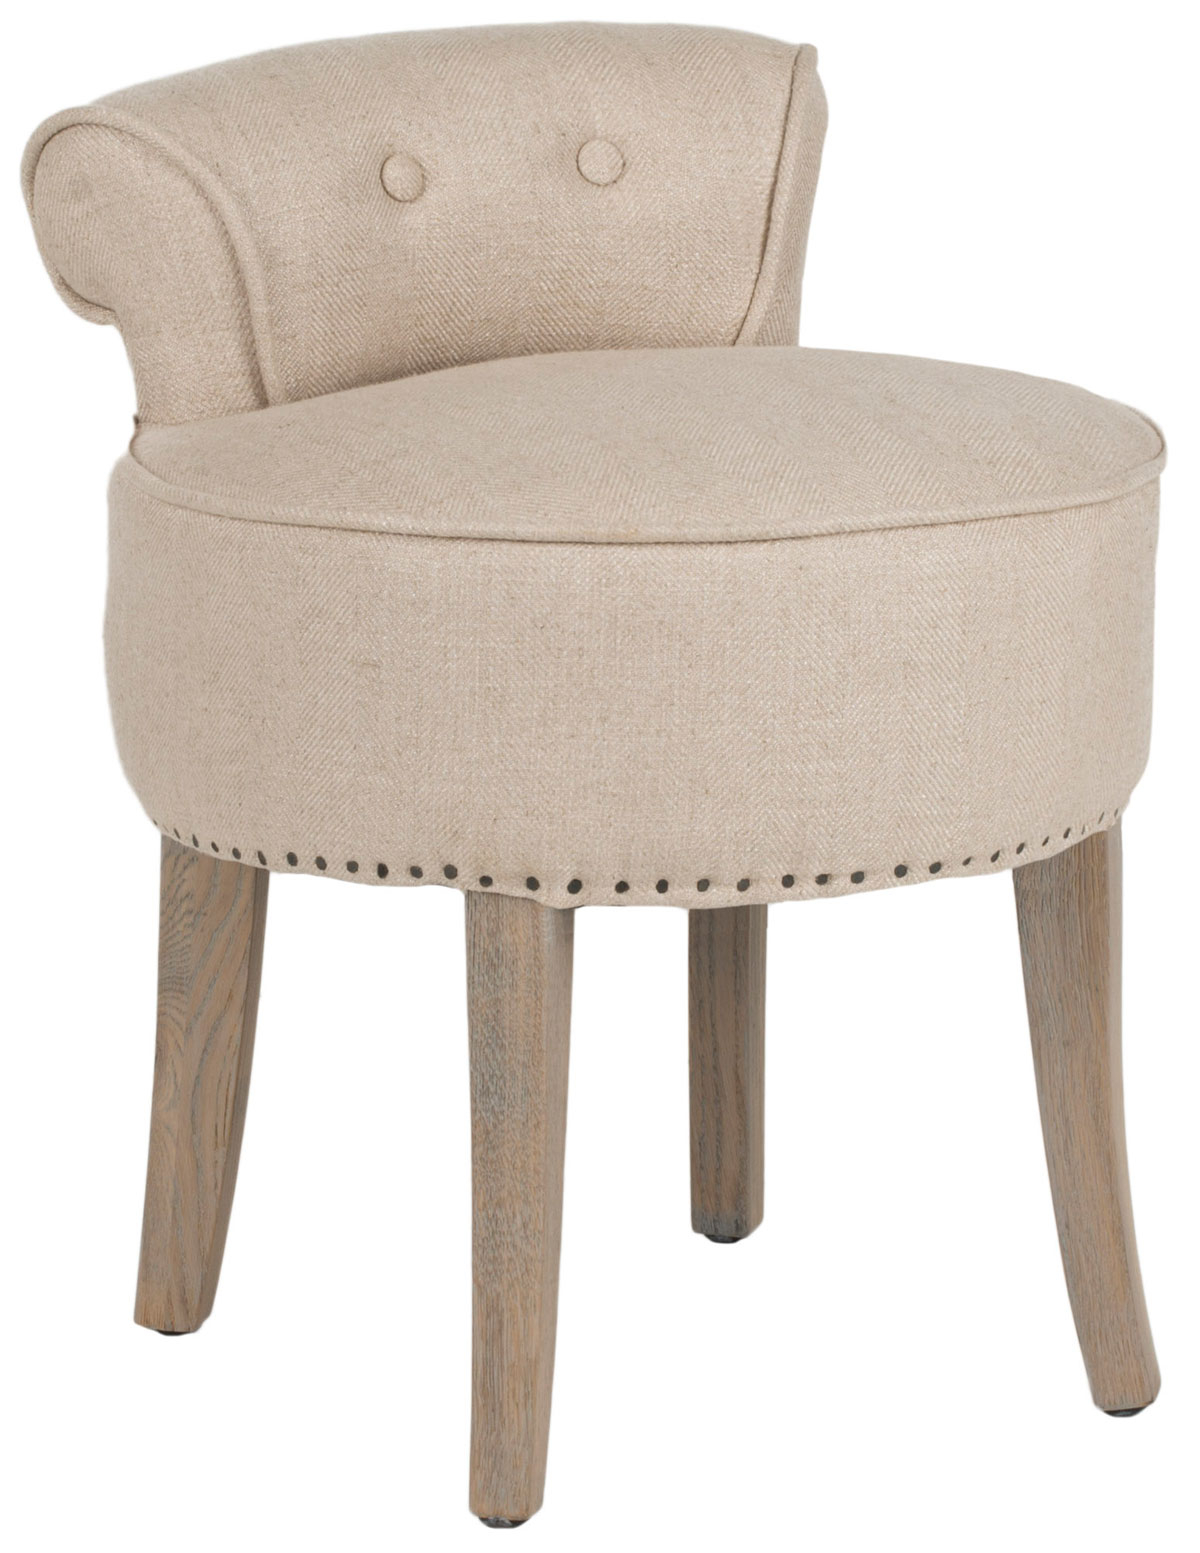 Mcr4546g Vanity Stools Furniture Safavieh intended for size 1200 X 1553